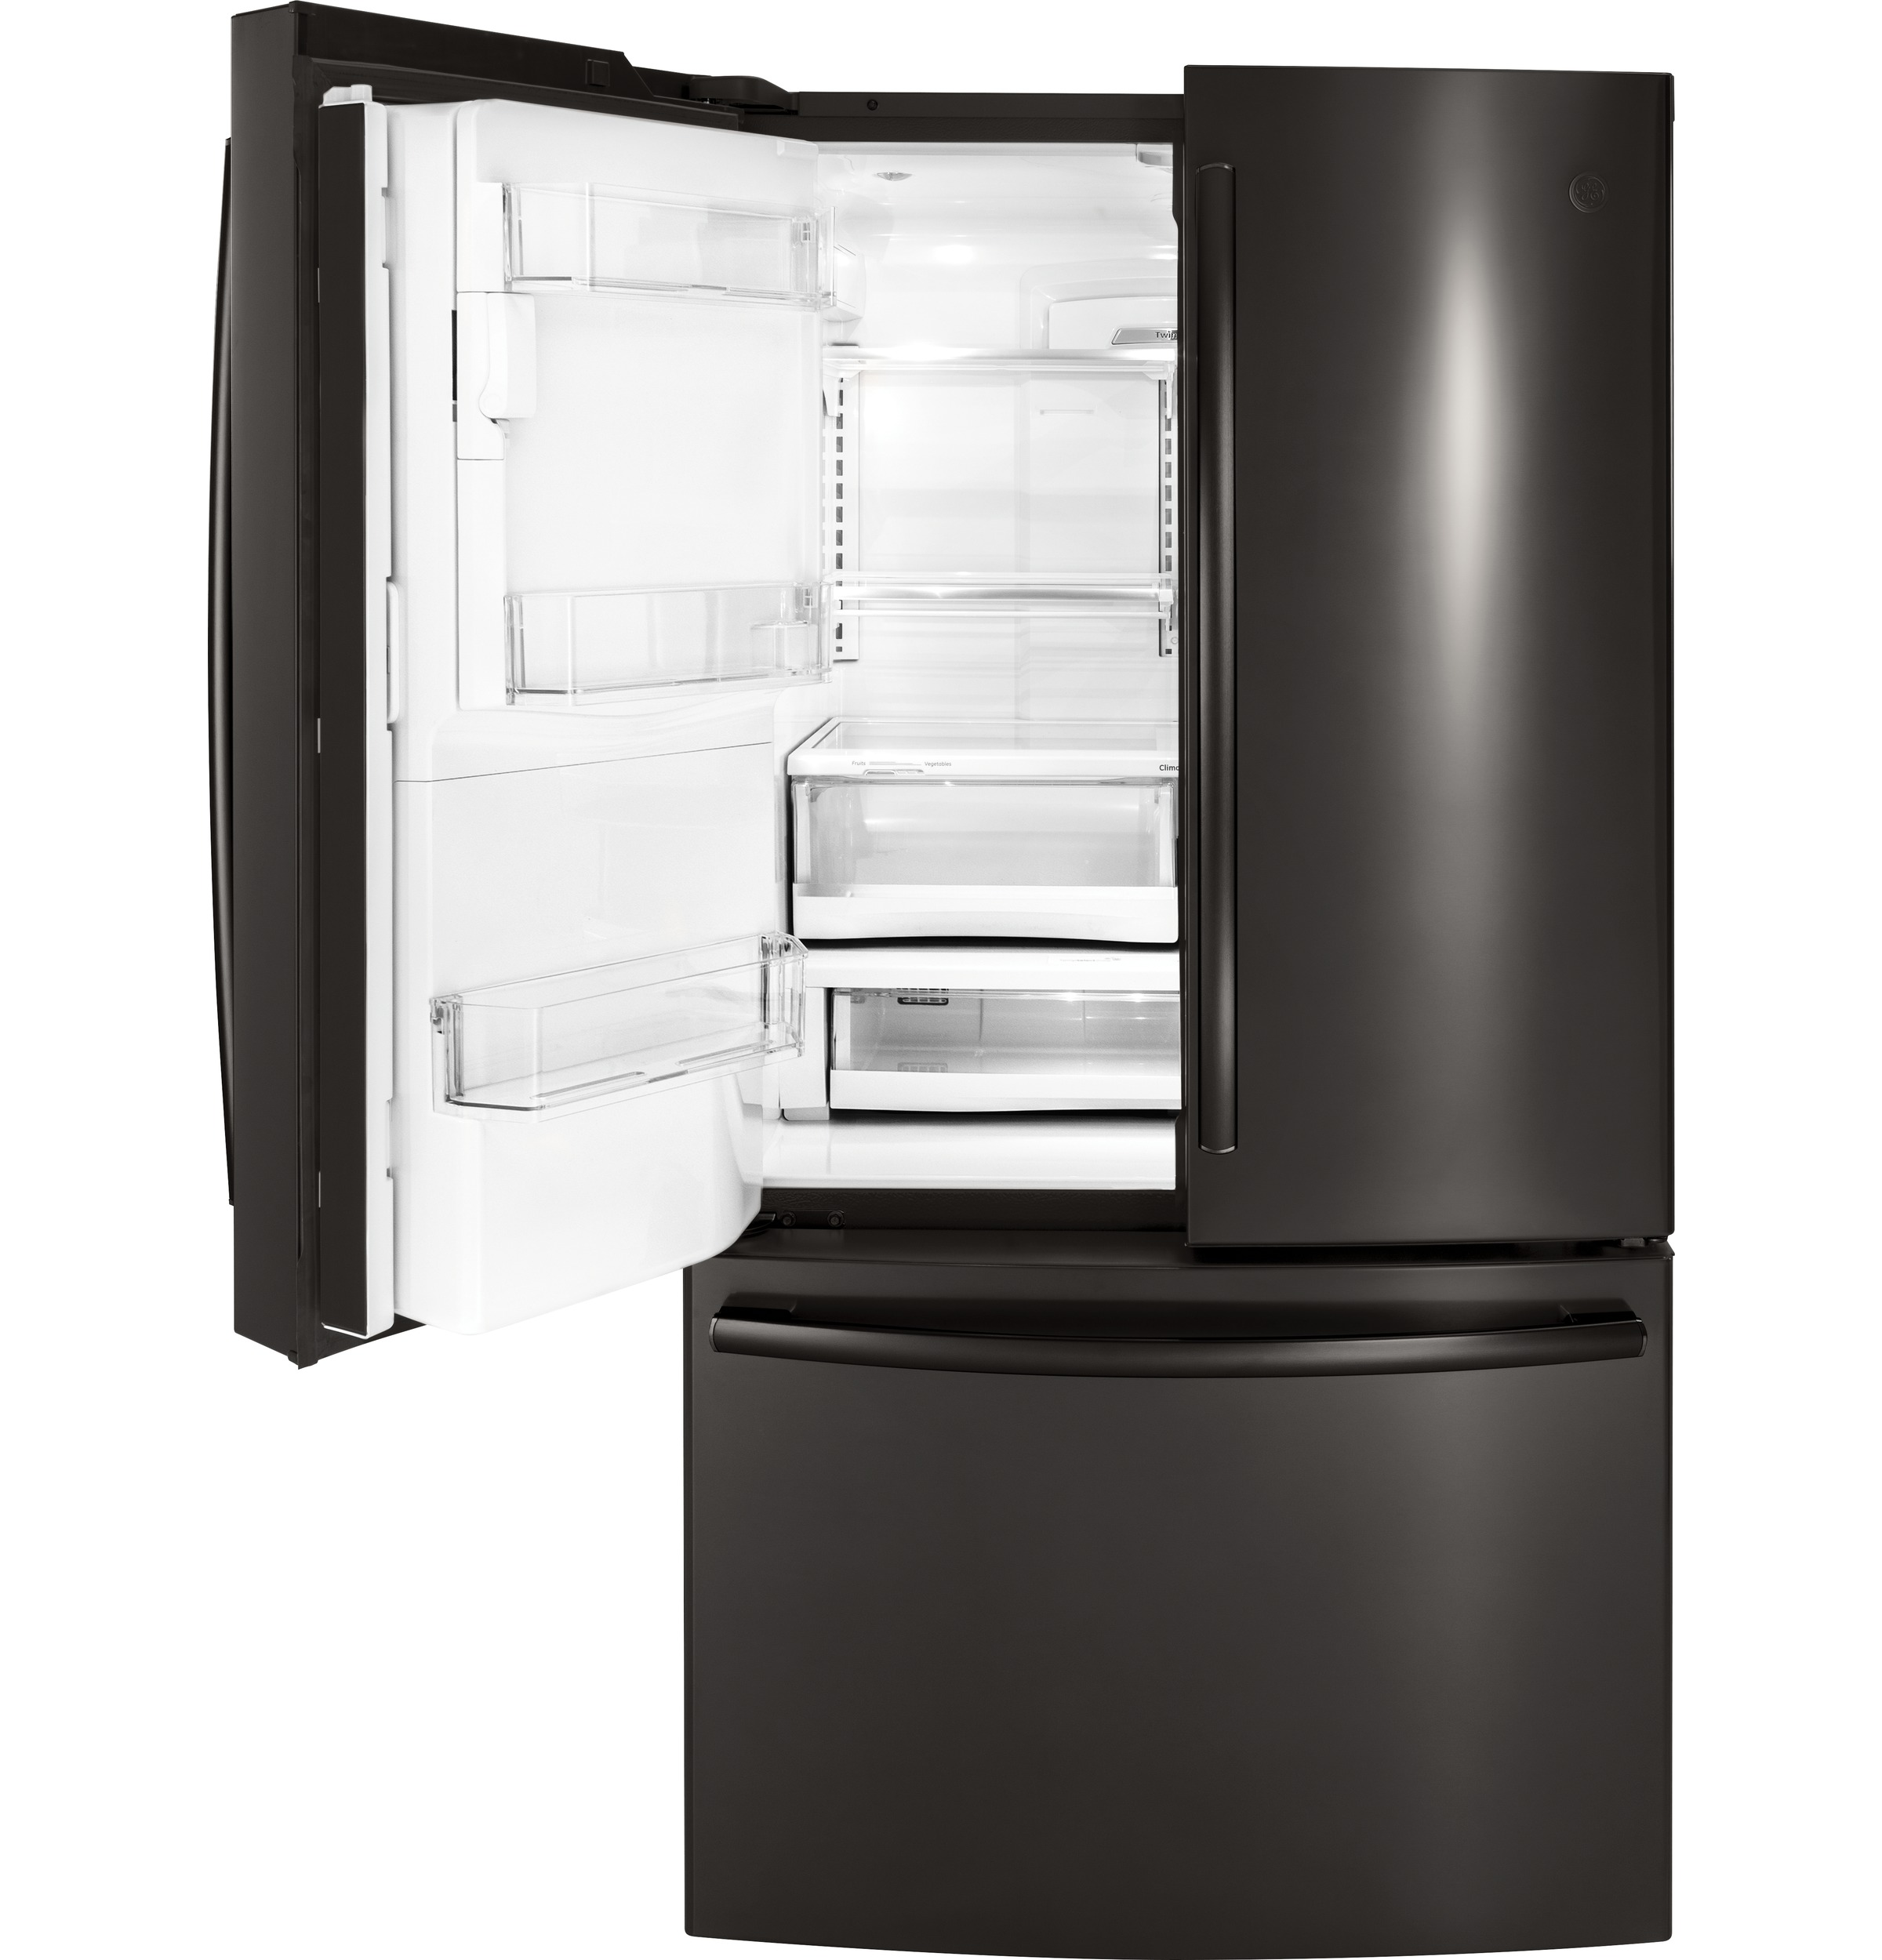 Model: PFE28PBLTS | GE Profile GE Profile™ Series ENERGY STAR® 27.8 Cu. Ft. French-Door Refrigerator with Keurig® K-Cup® Brewing System